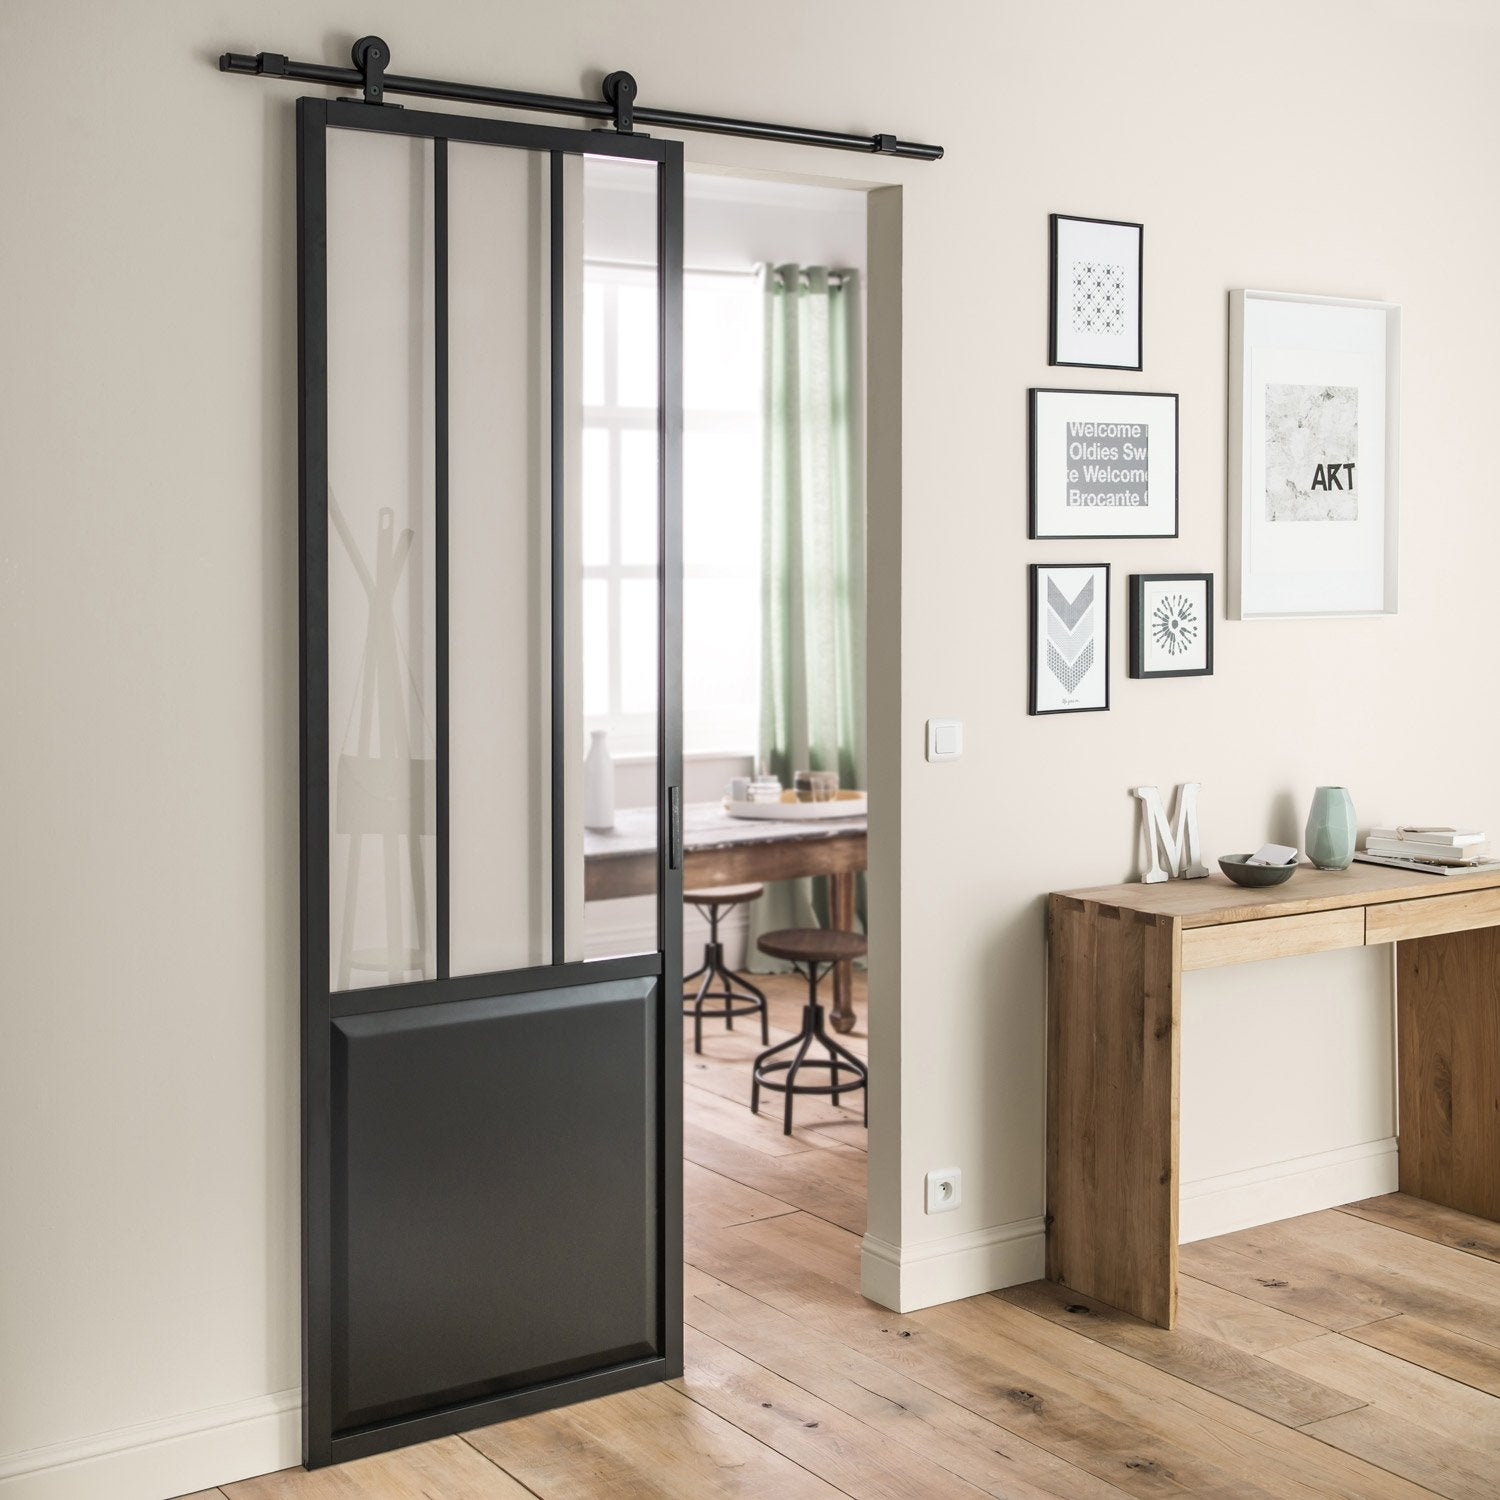 Ensemble porte coulissante atelier mdf rev tu avec le rail for Verriere de separation interieure